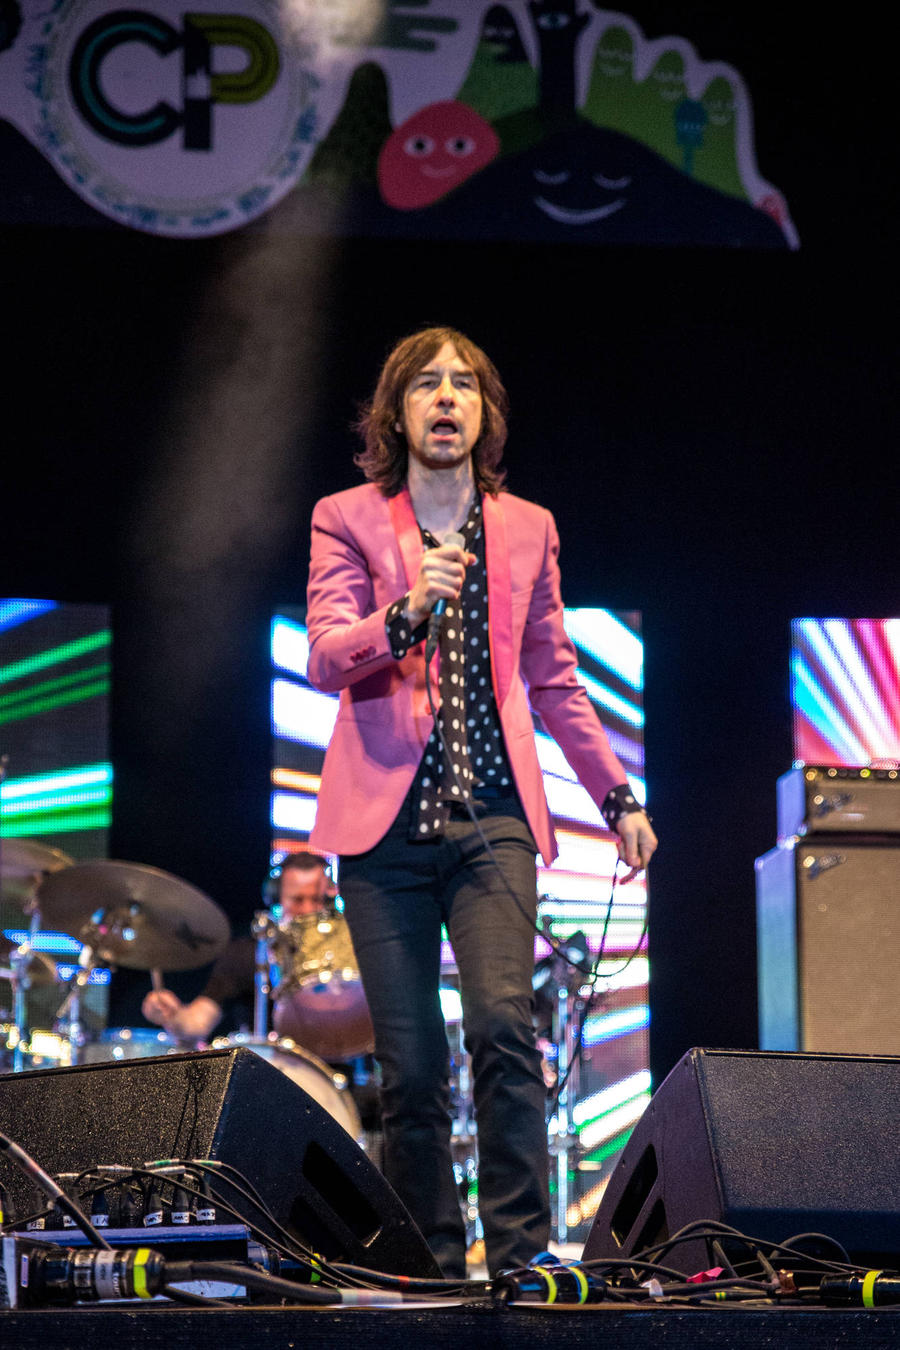 Bobby Gillespie Flown Home After Stage Fall Injury